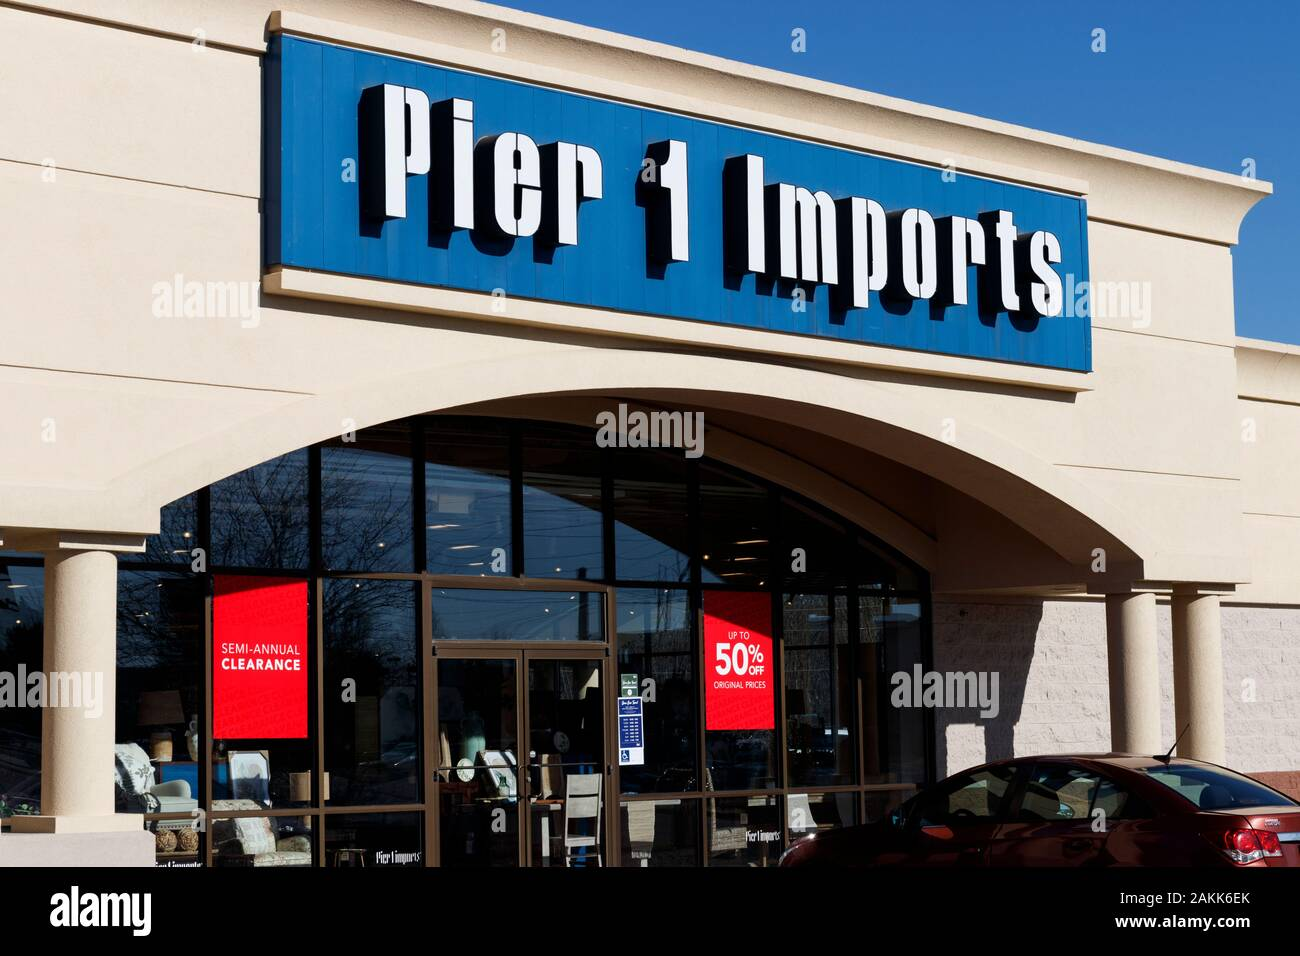 Indianapolis Circa January 2020 Pier 1 Imports Retail Strip Mall Location Pier 1 Imports Home Furnishings And Decor Stock Photo Alamy